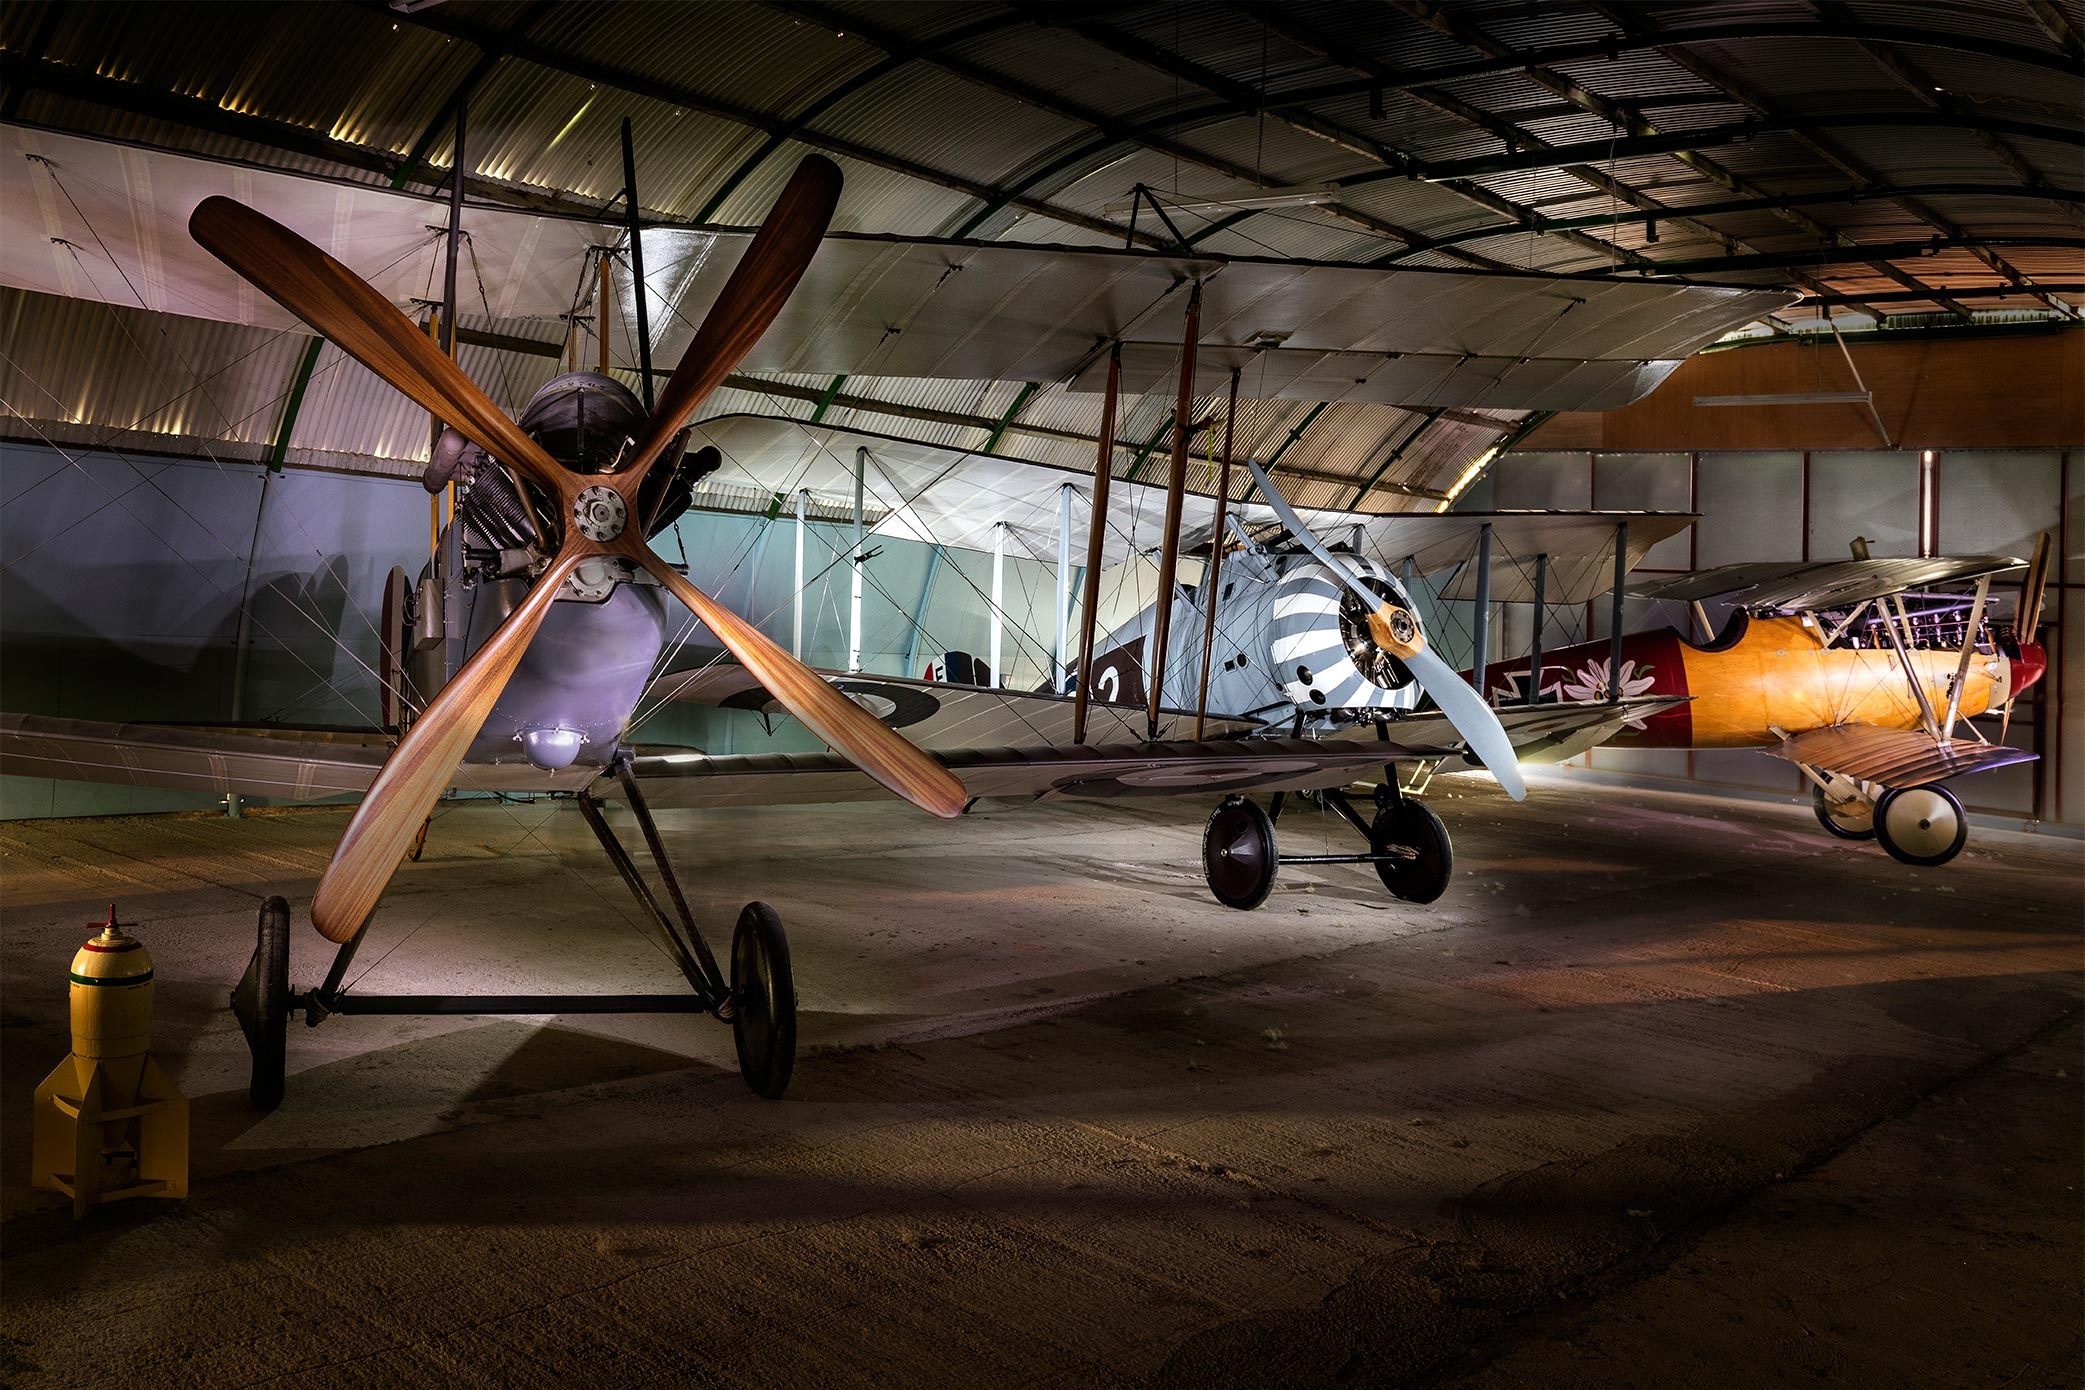 Three replica WW1 aircraft in the Stow Maries hangar